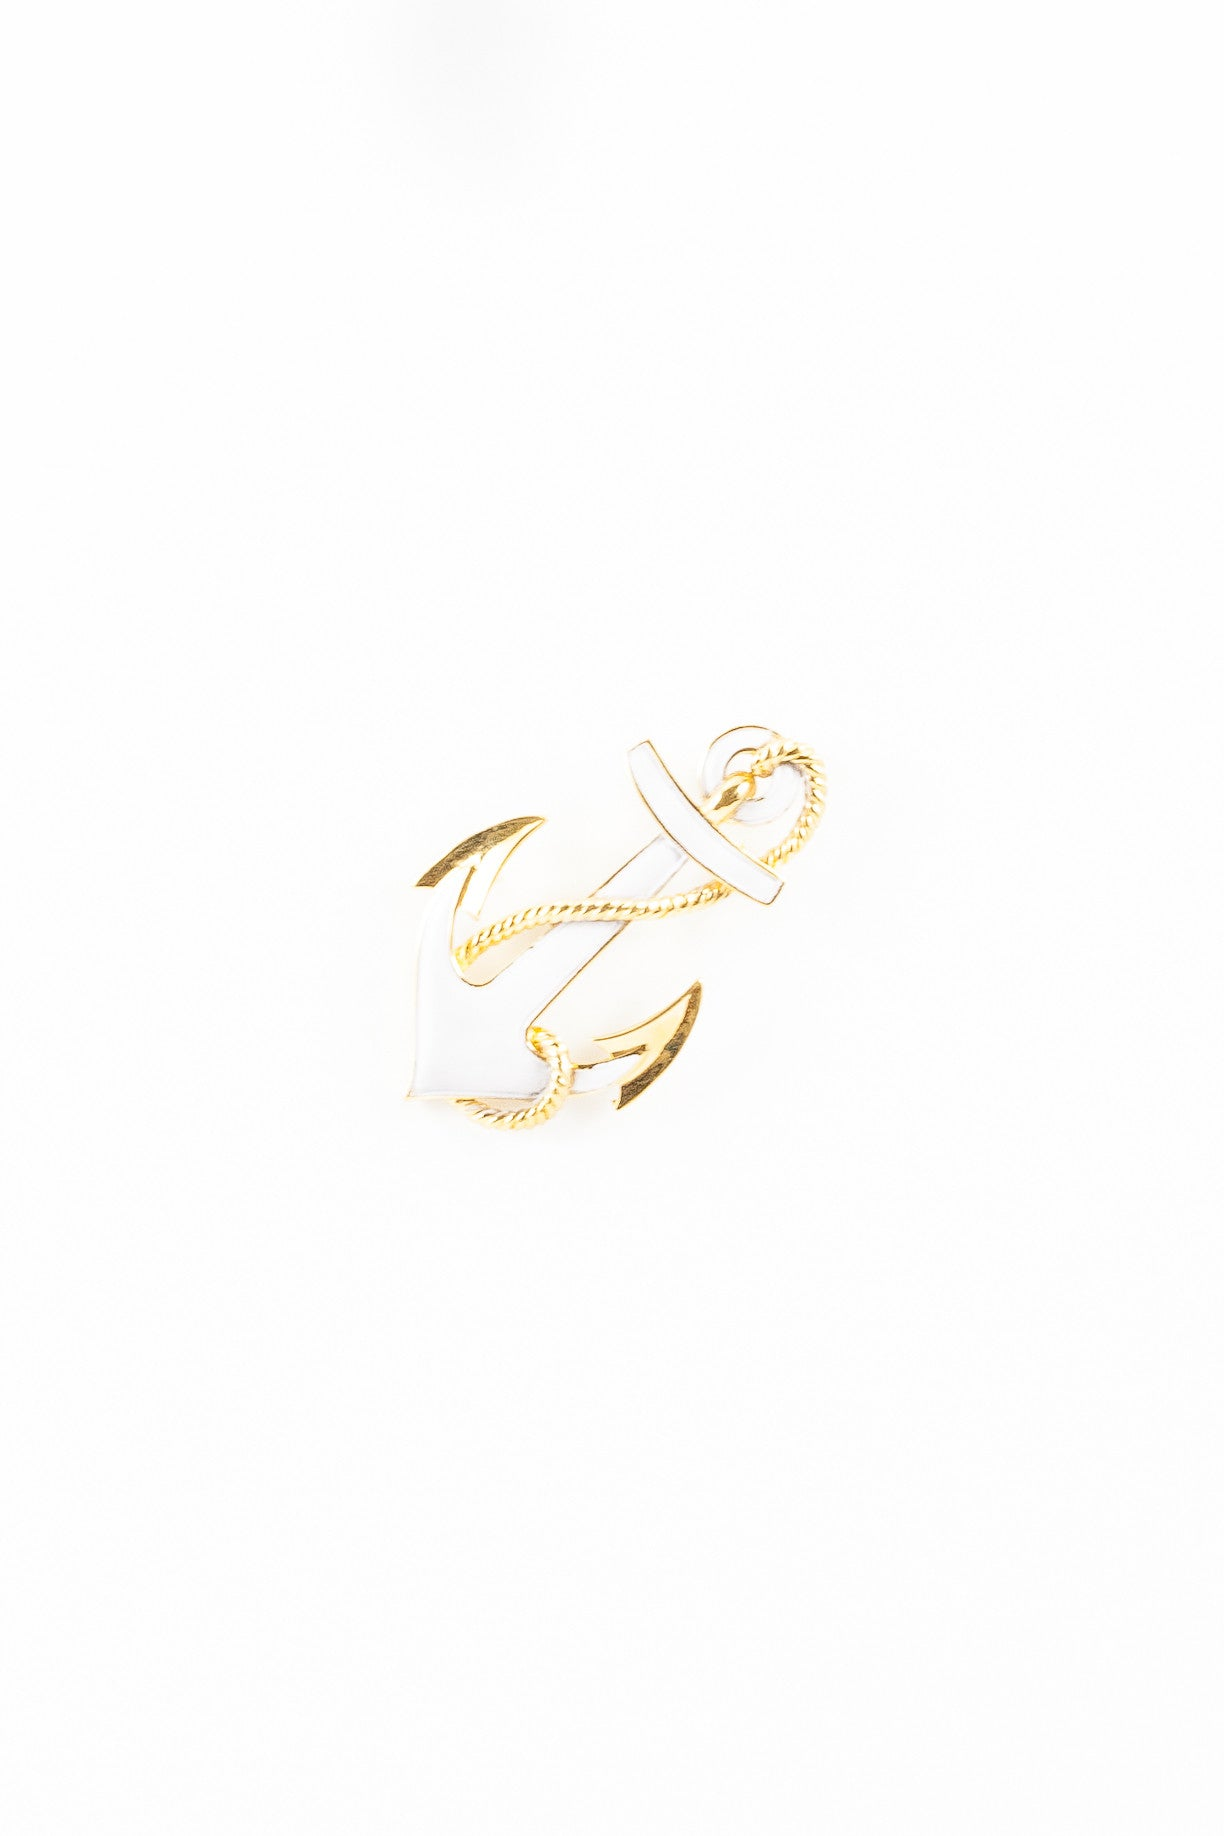 80's__Trifari__Anchor pin